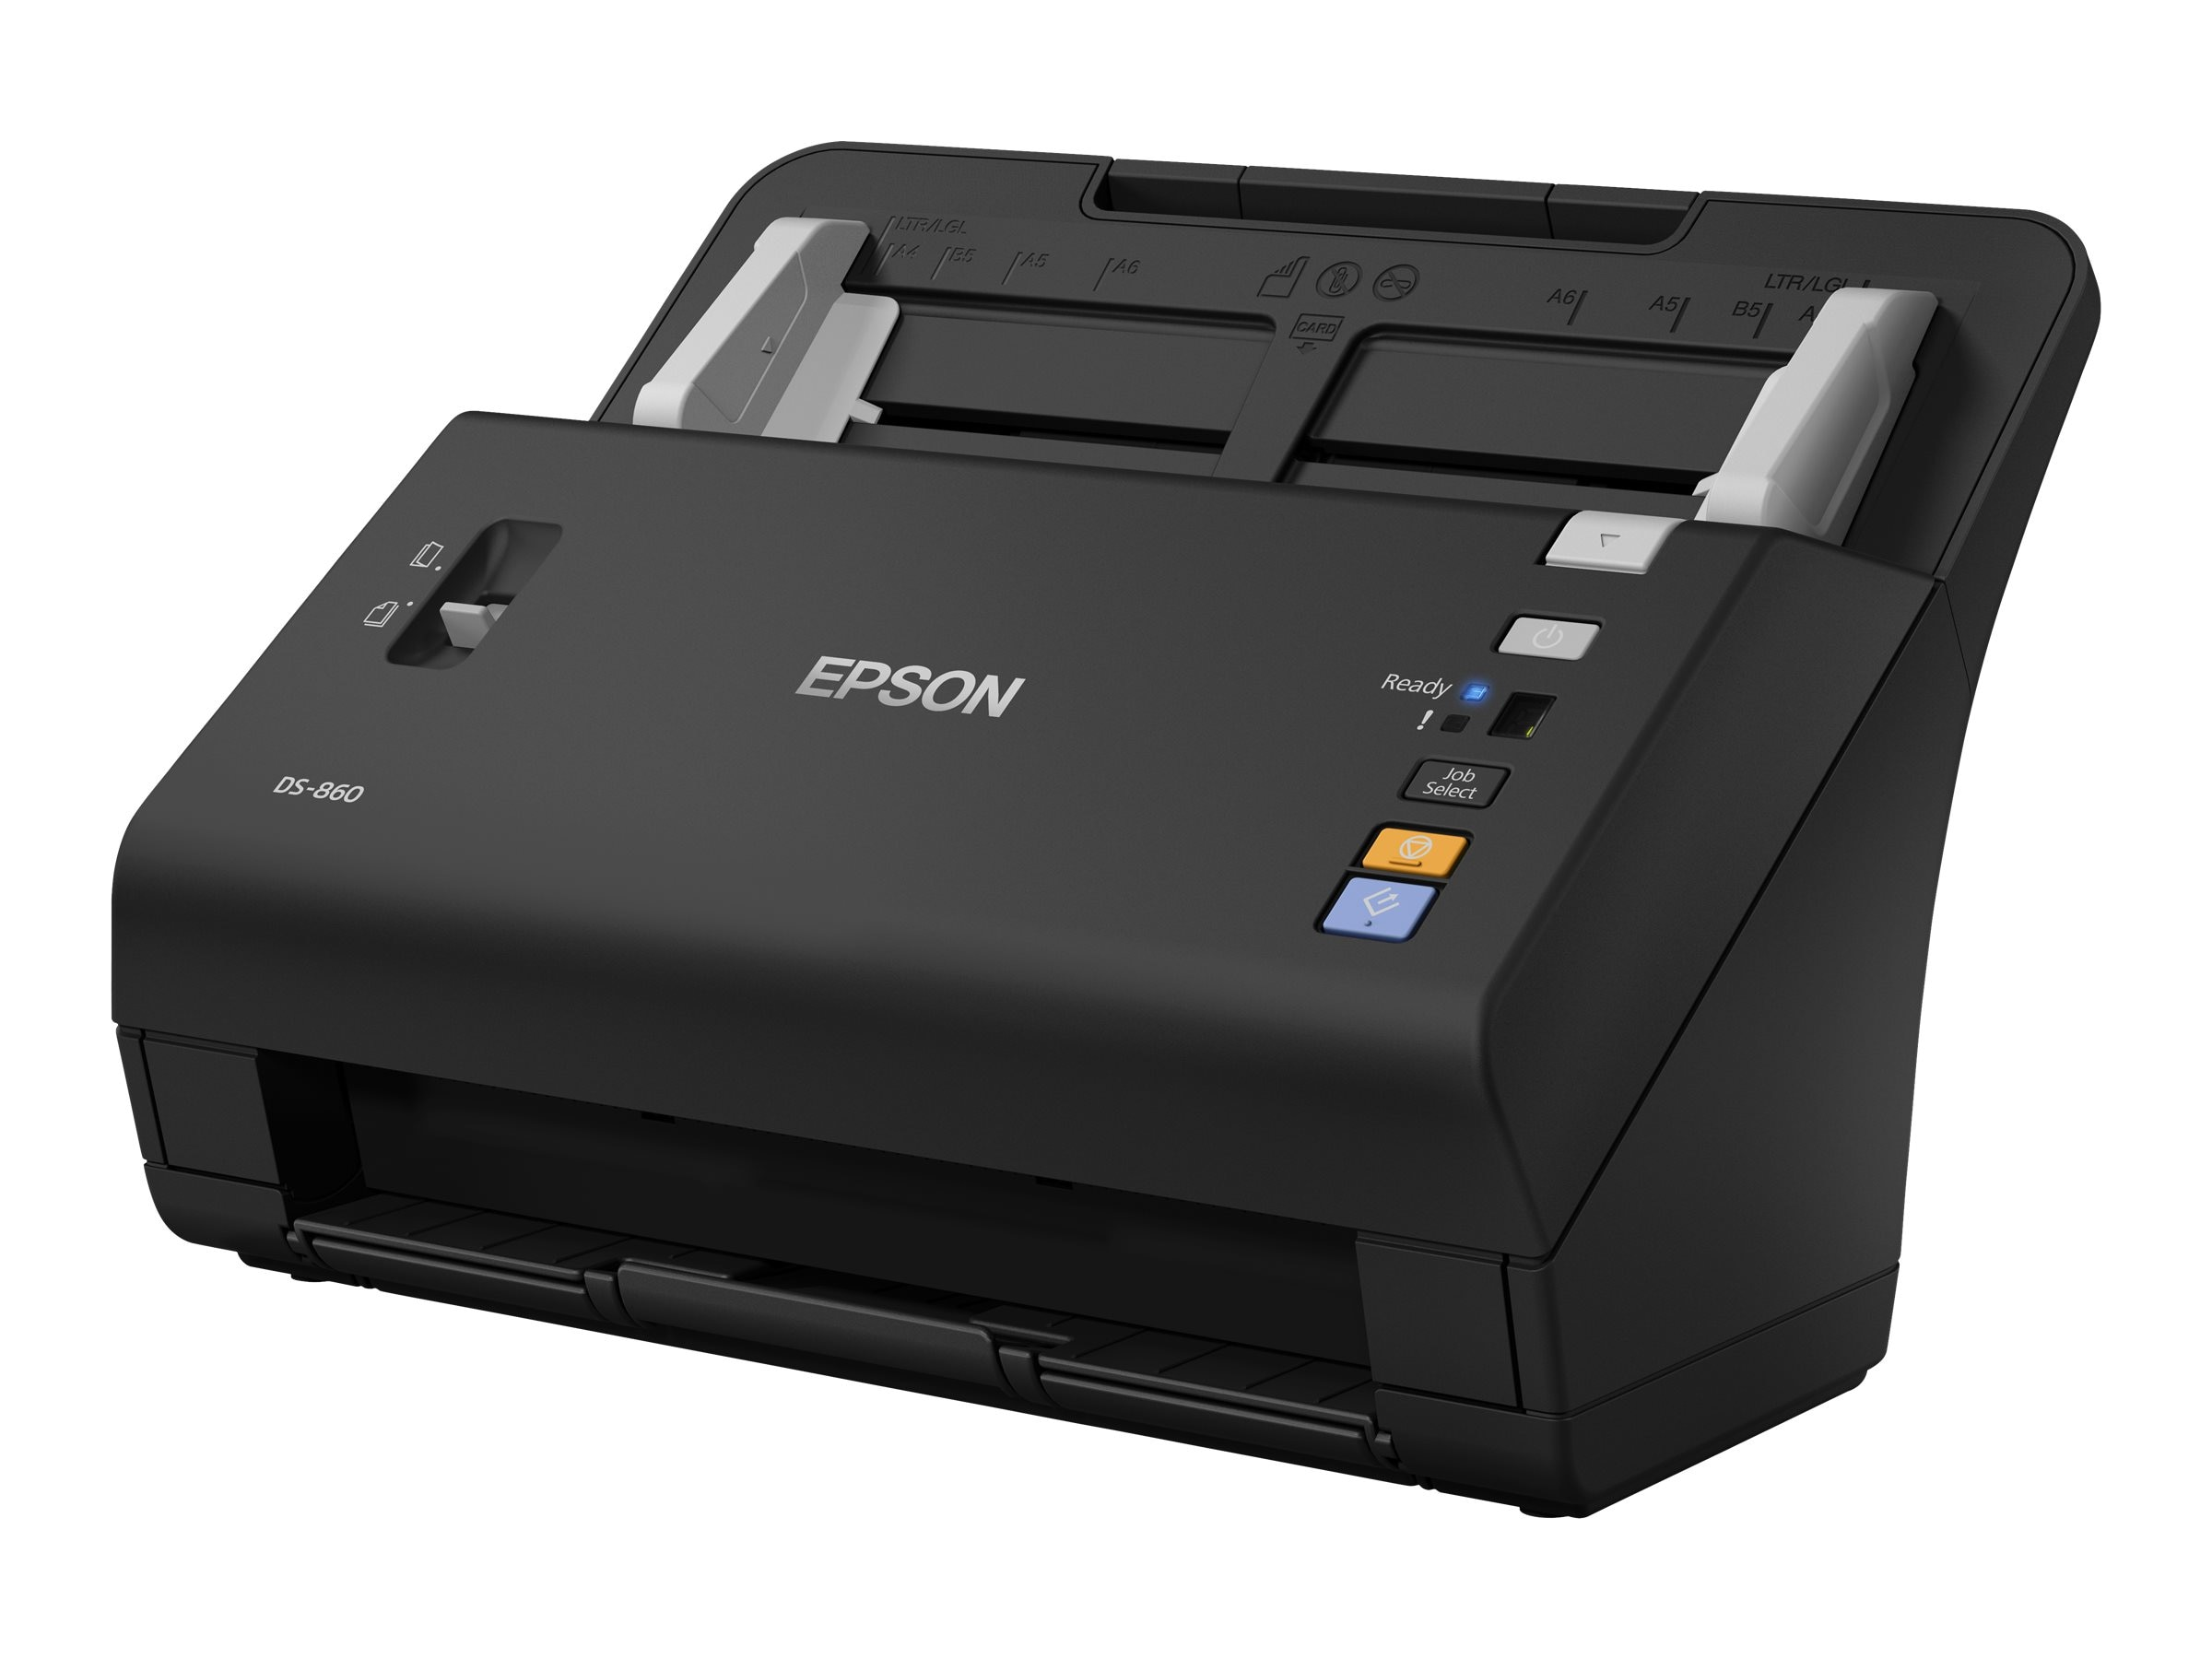 Epson WorkForce DS-860 65ppm 80-page ADF Document Scanner